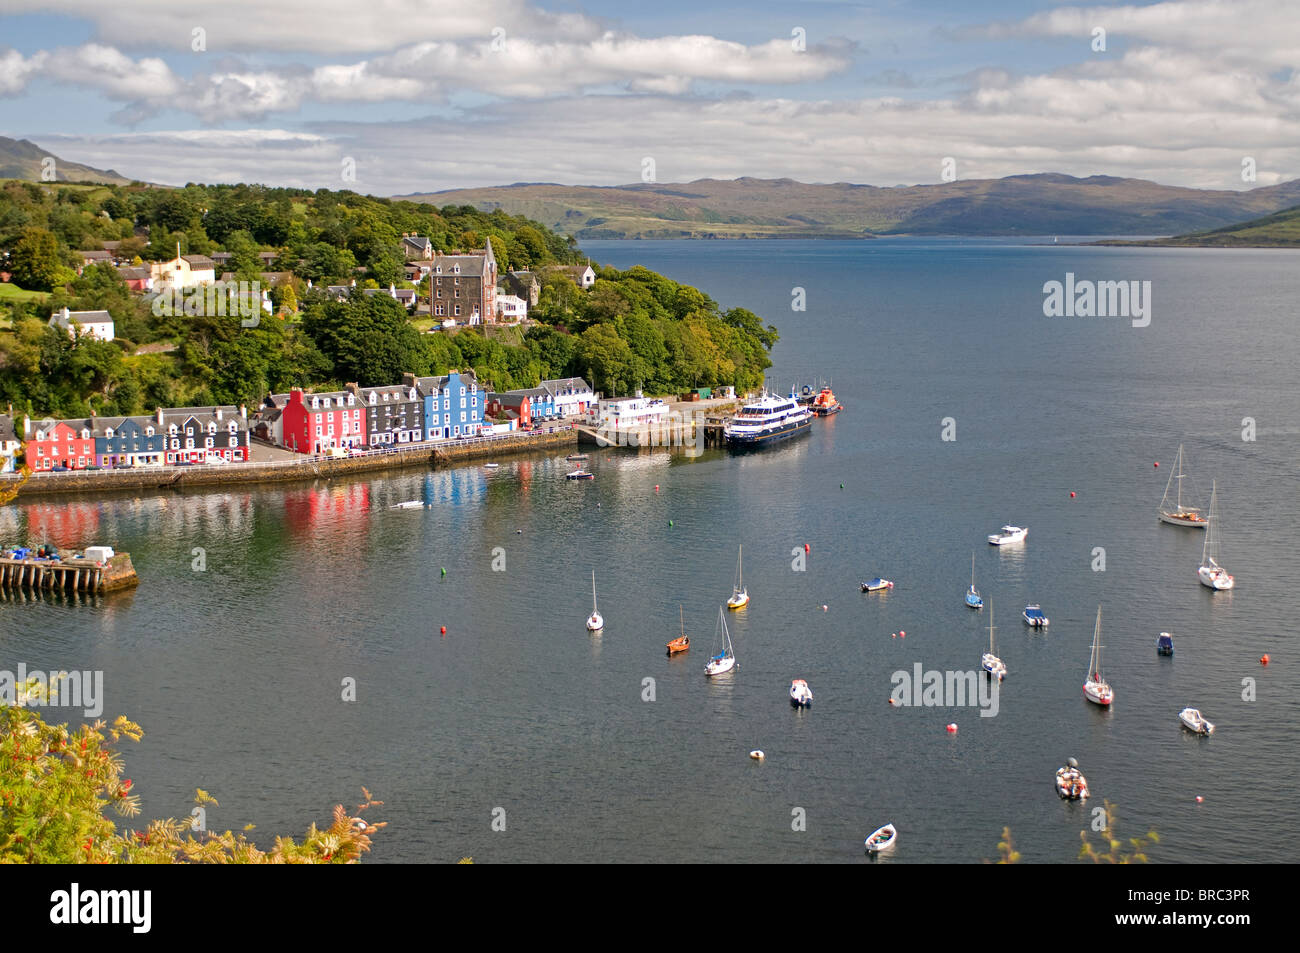 Tobermory, the island capital of Mull in the Inner Hebrides, Scotland. SCO 6716 - Stock Image